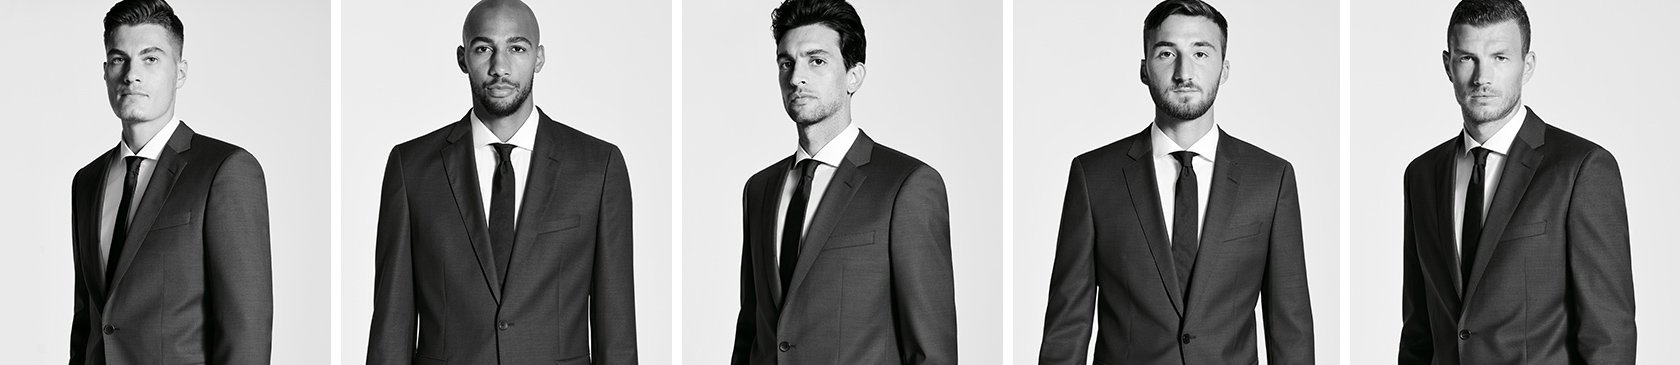 c76017ab156b51 A. S. Roma Players - Suits, news & more brought to you by BOSS